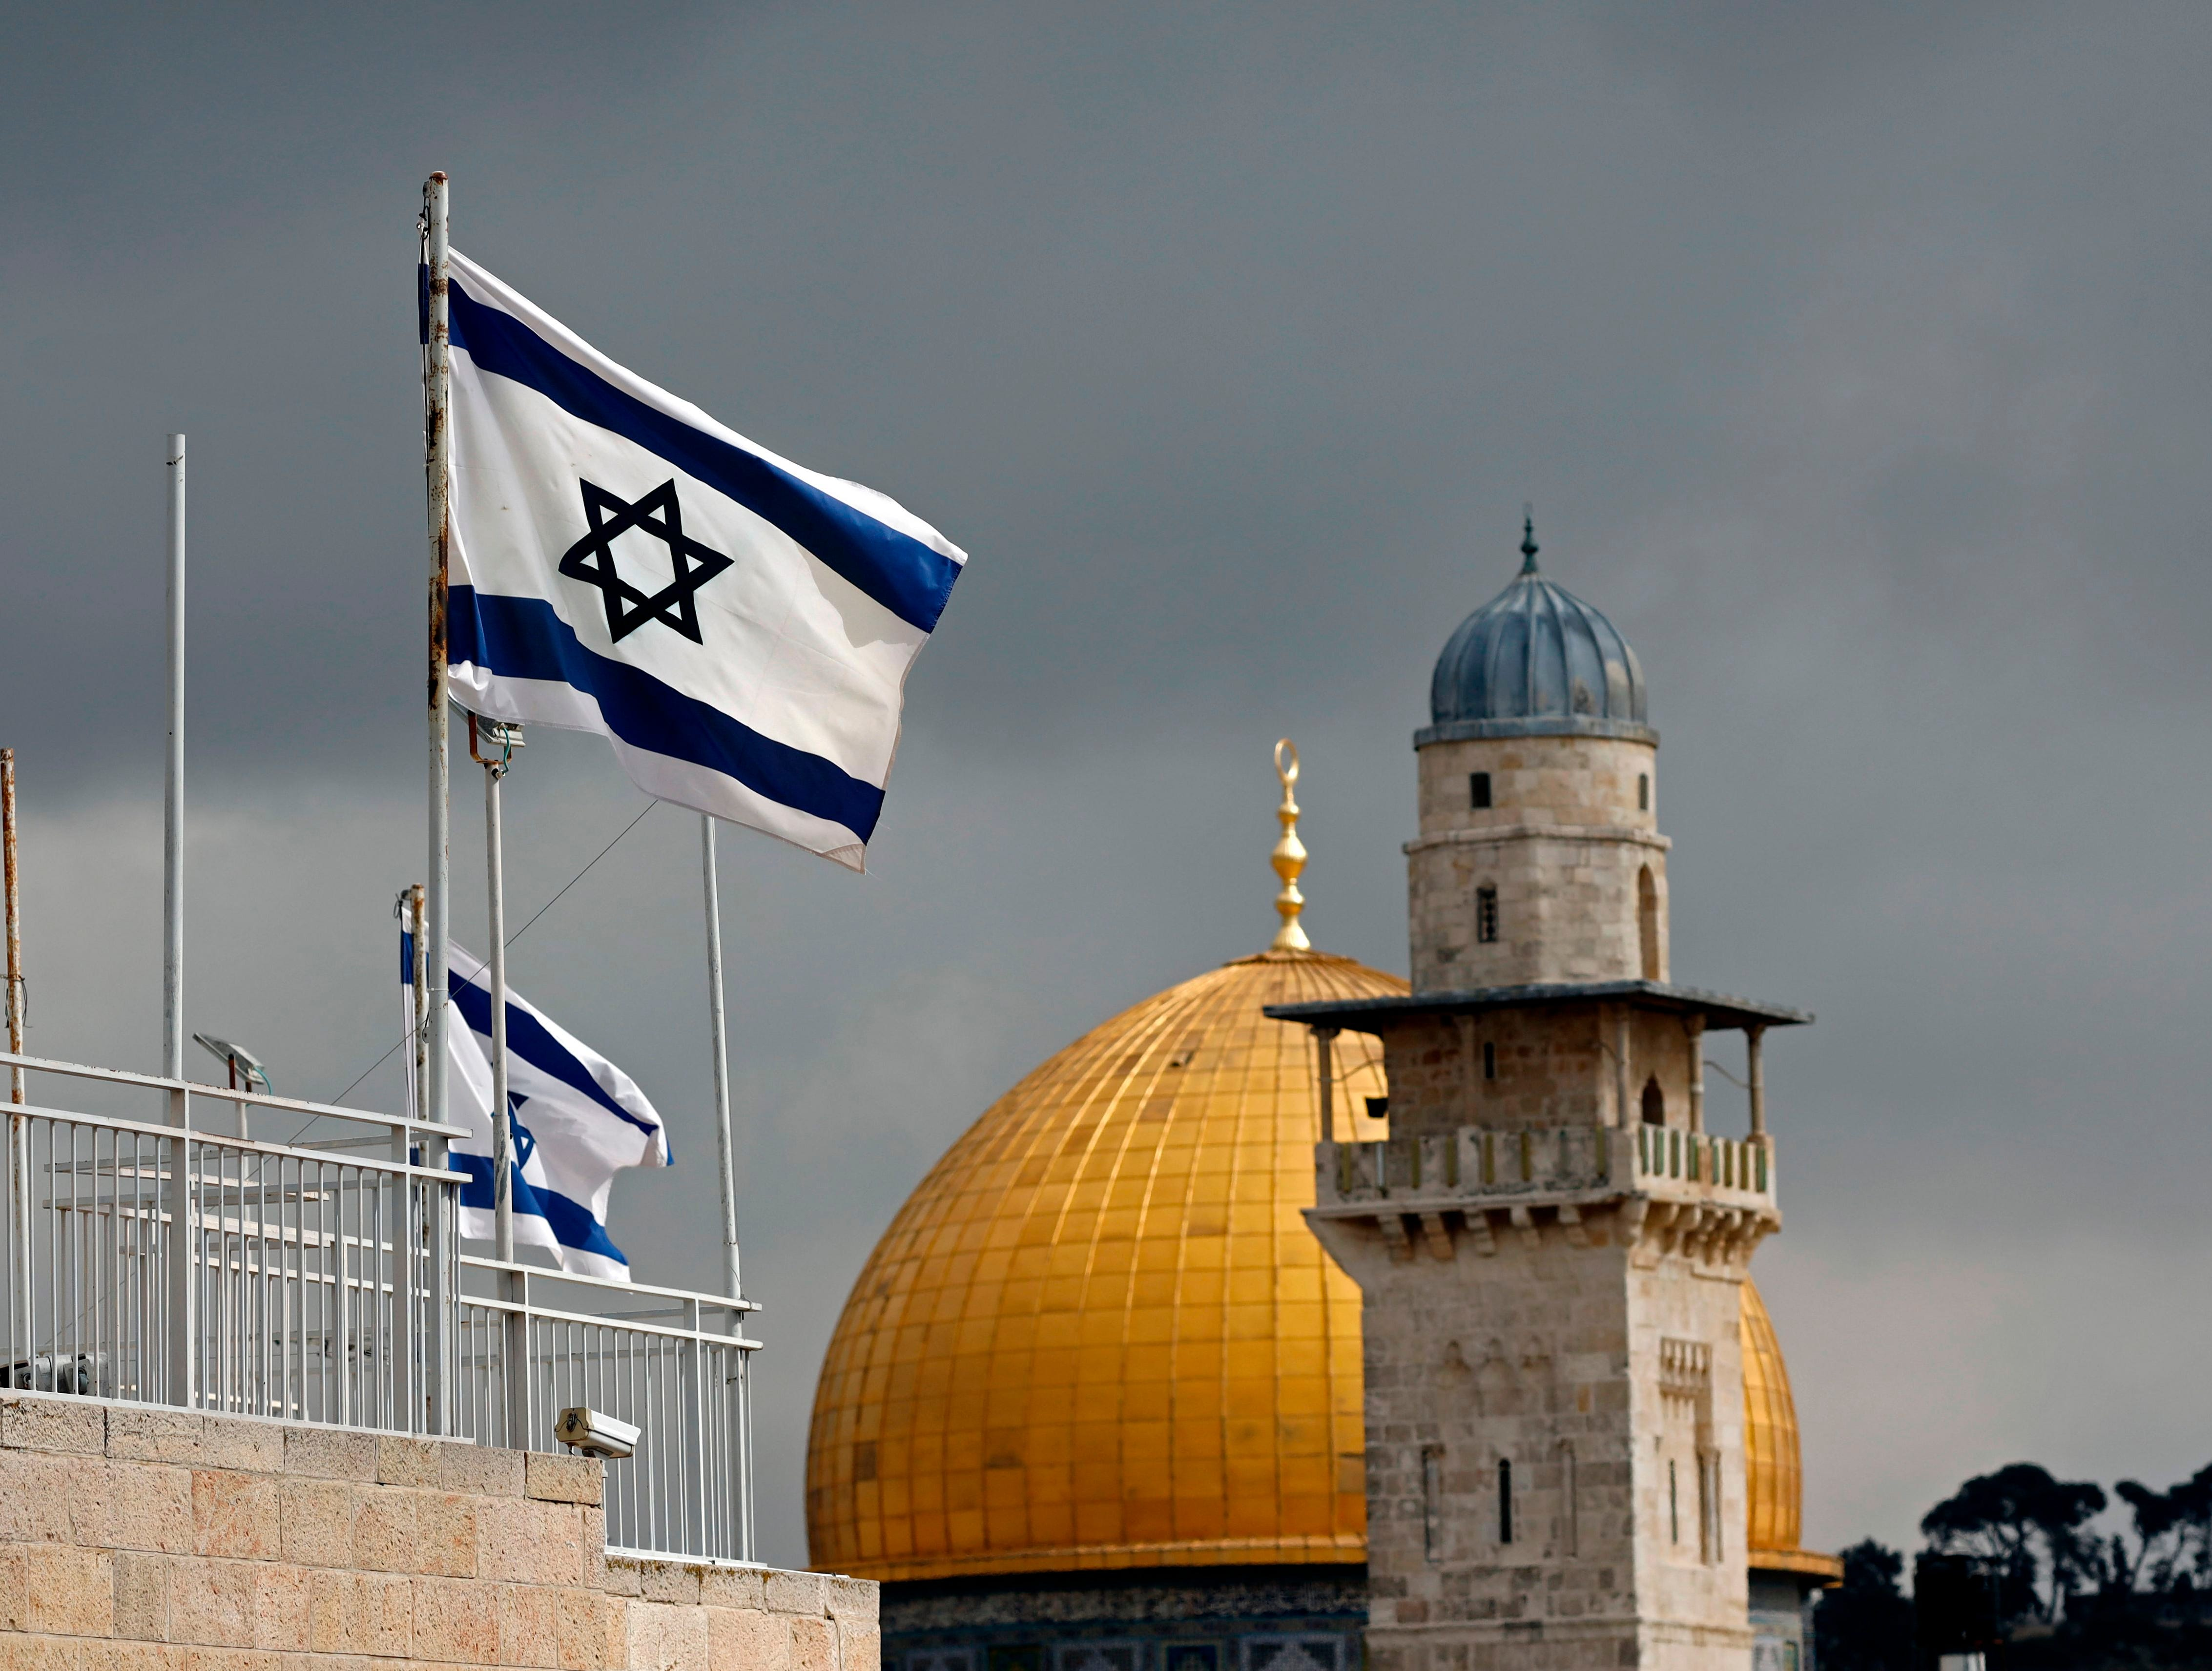 Israeli flags flutter in front of the Dome of the Rock in the Jerusalem's Old City, on February 19, 2019. (Photo by THOMAS COEX / AFP)THOMAS COEX/AFP/Getty Images ORIG FILE ID: AFP_1DL9JZ